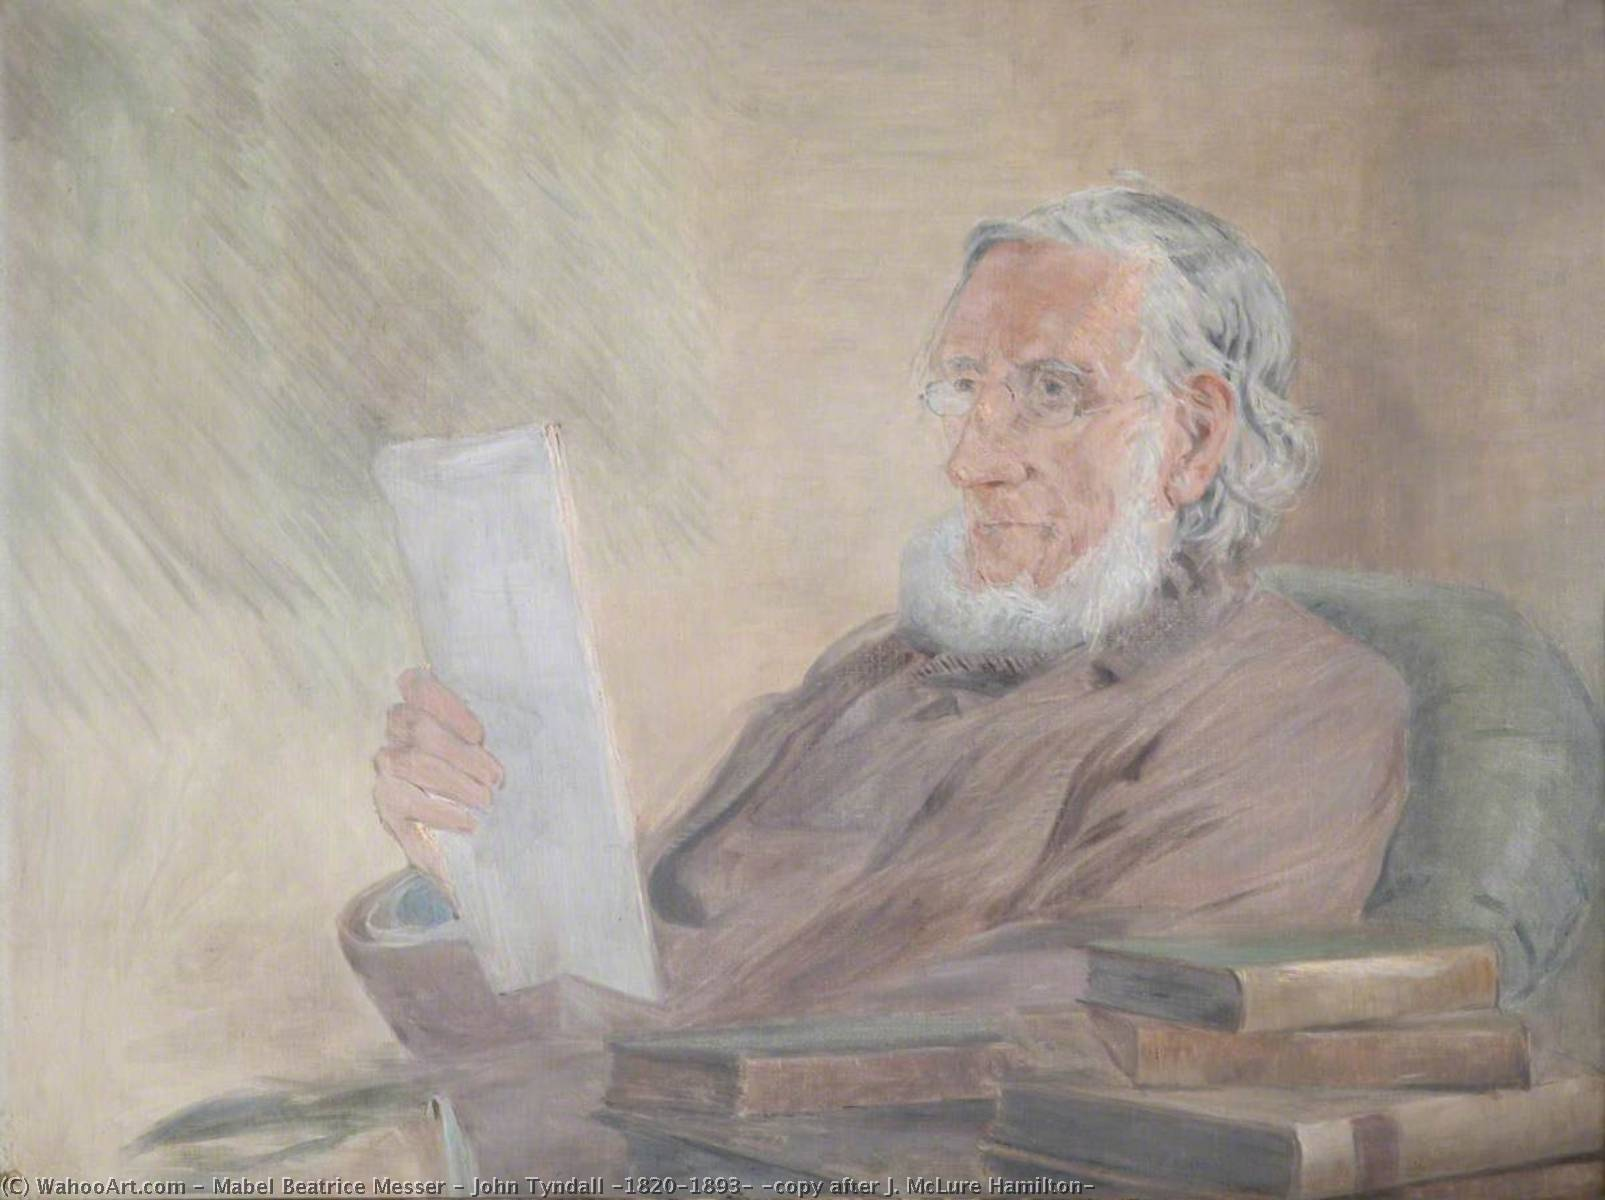 John Tyndall (1820–1893) (copy after J. McLure Hamilton) by Mabel Beatrice Messer | Famous Paintings Reproductions | WahooArt.com